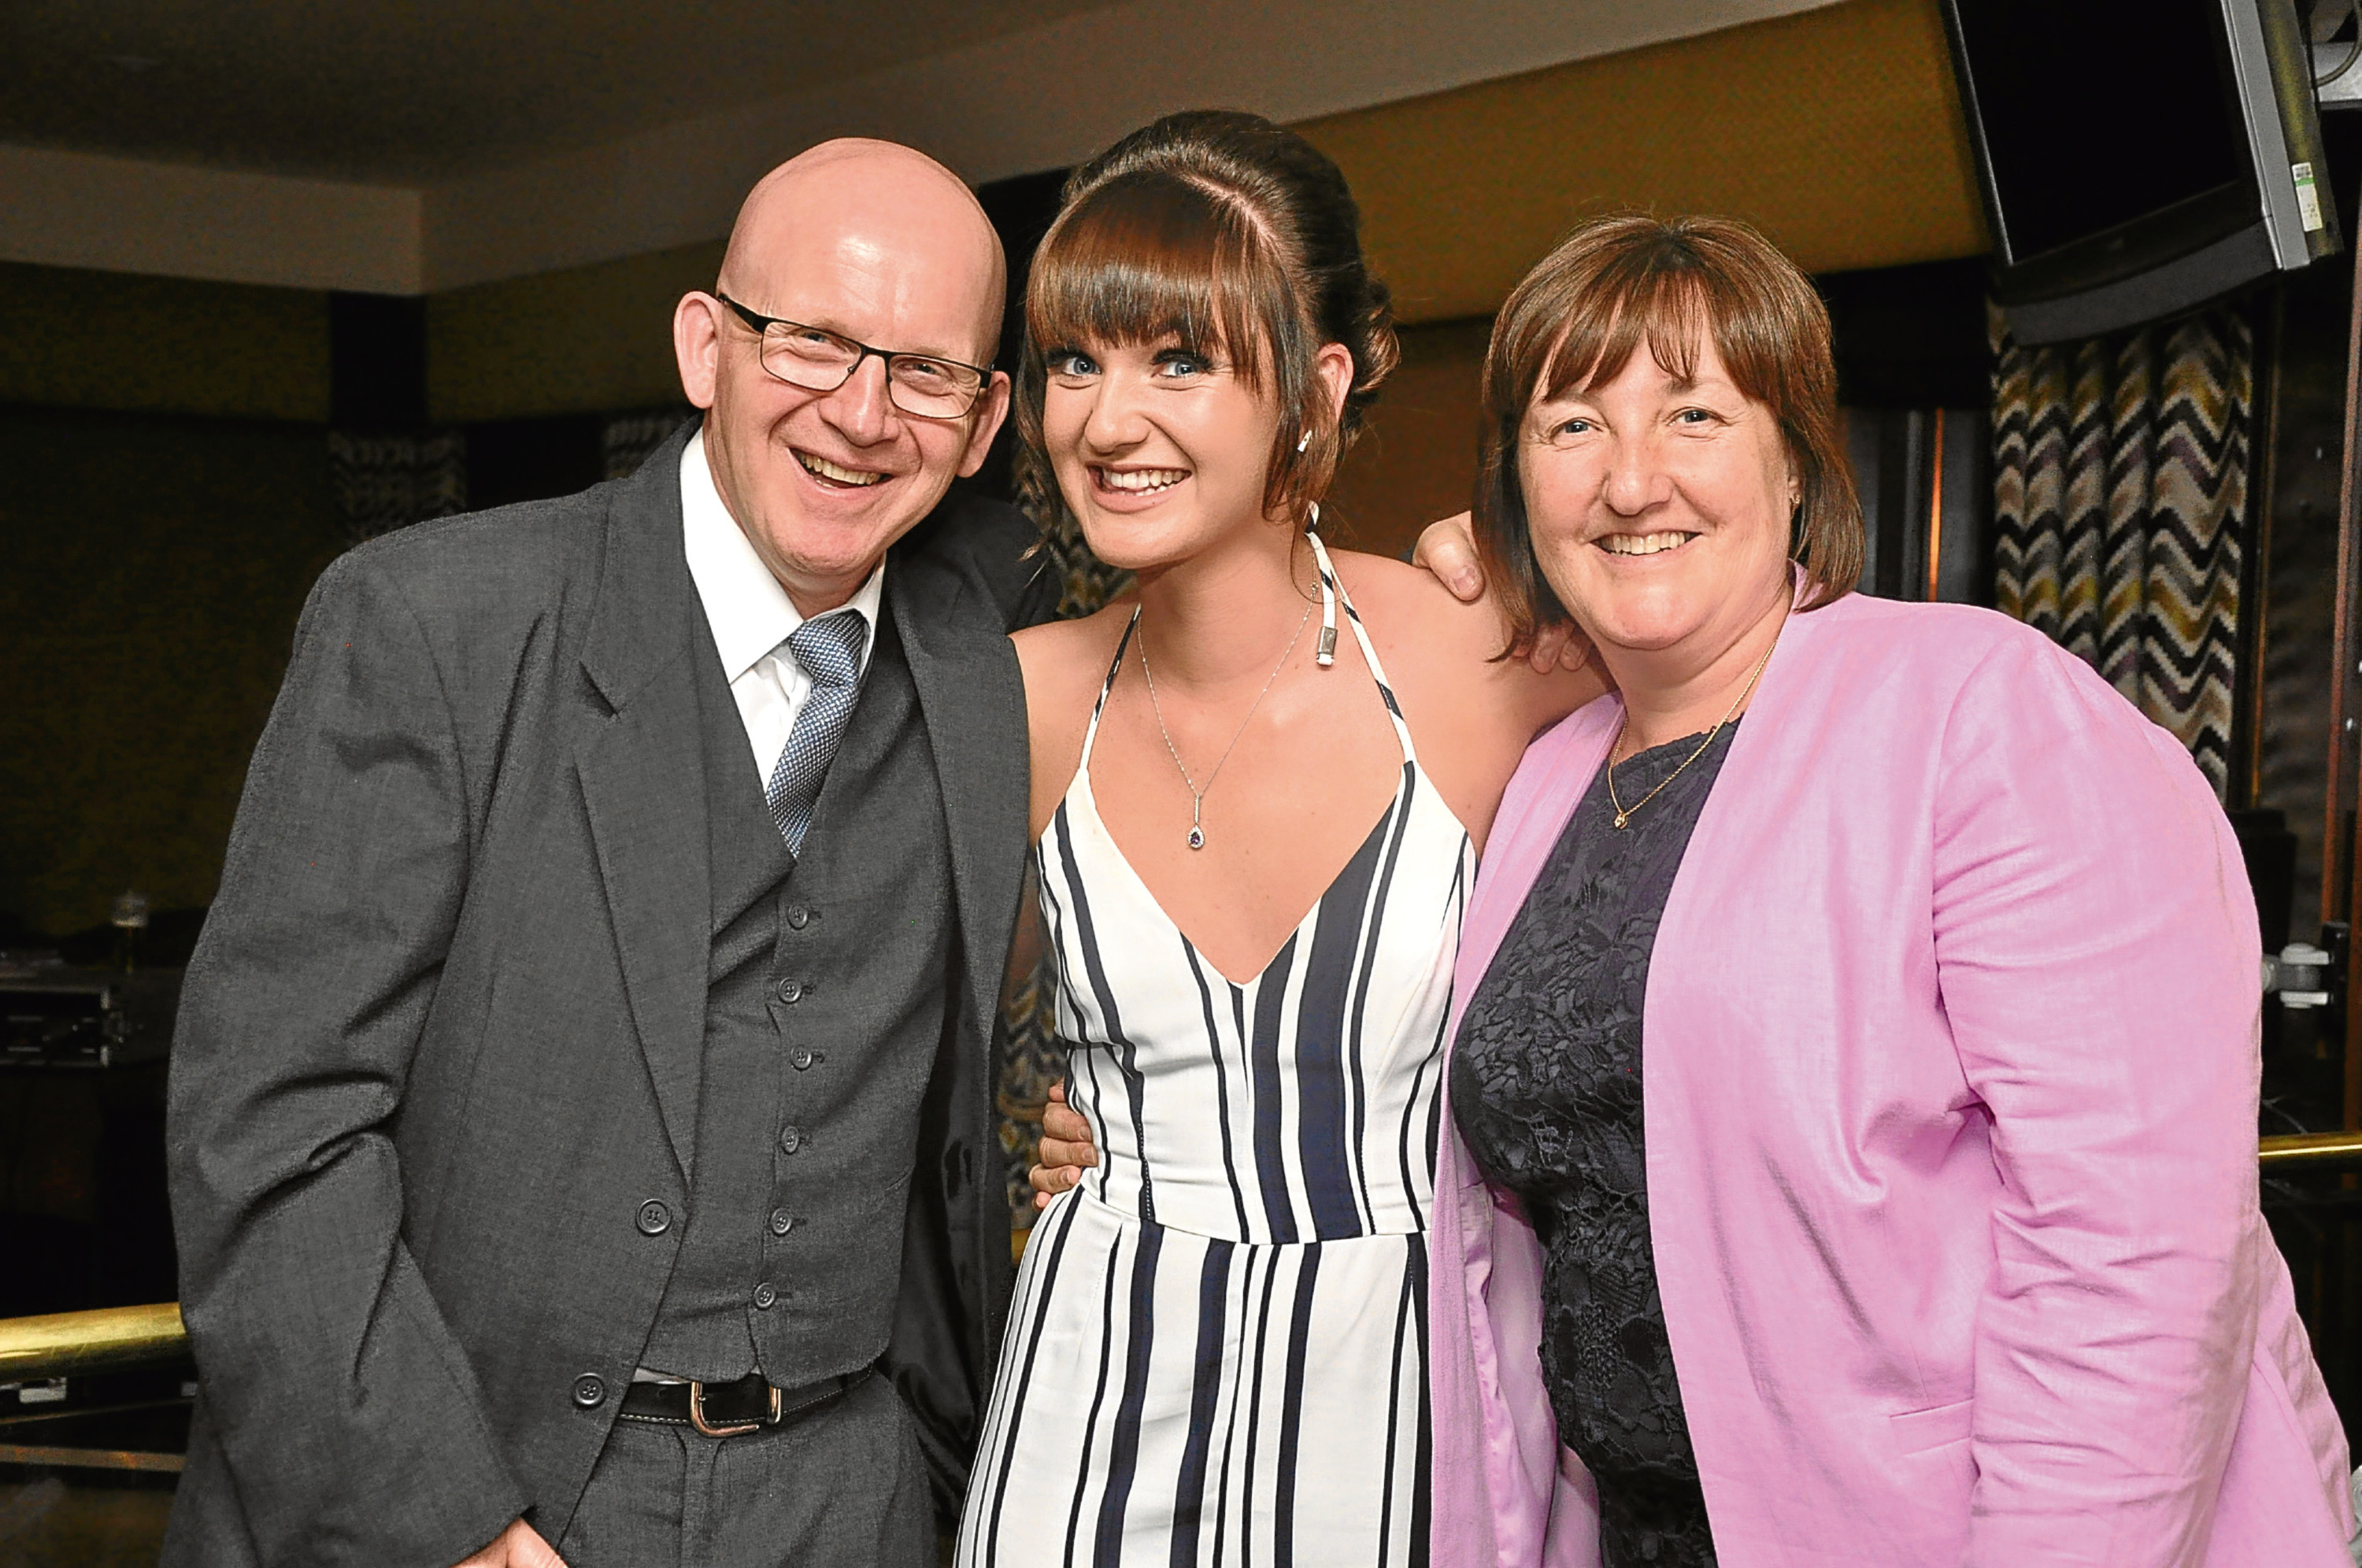 Gail Milne (right) with her husband Duncan and daughter Leanne